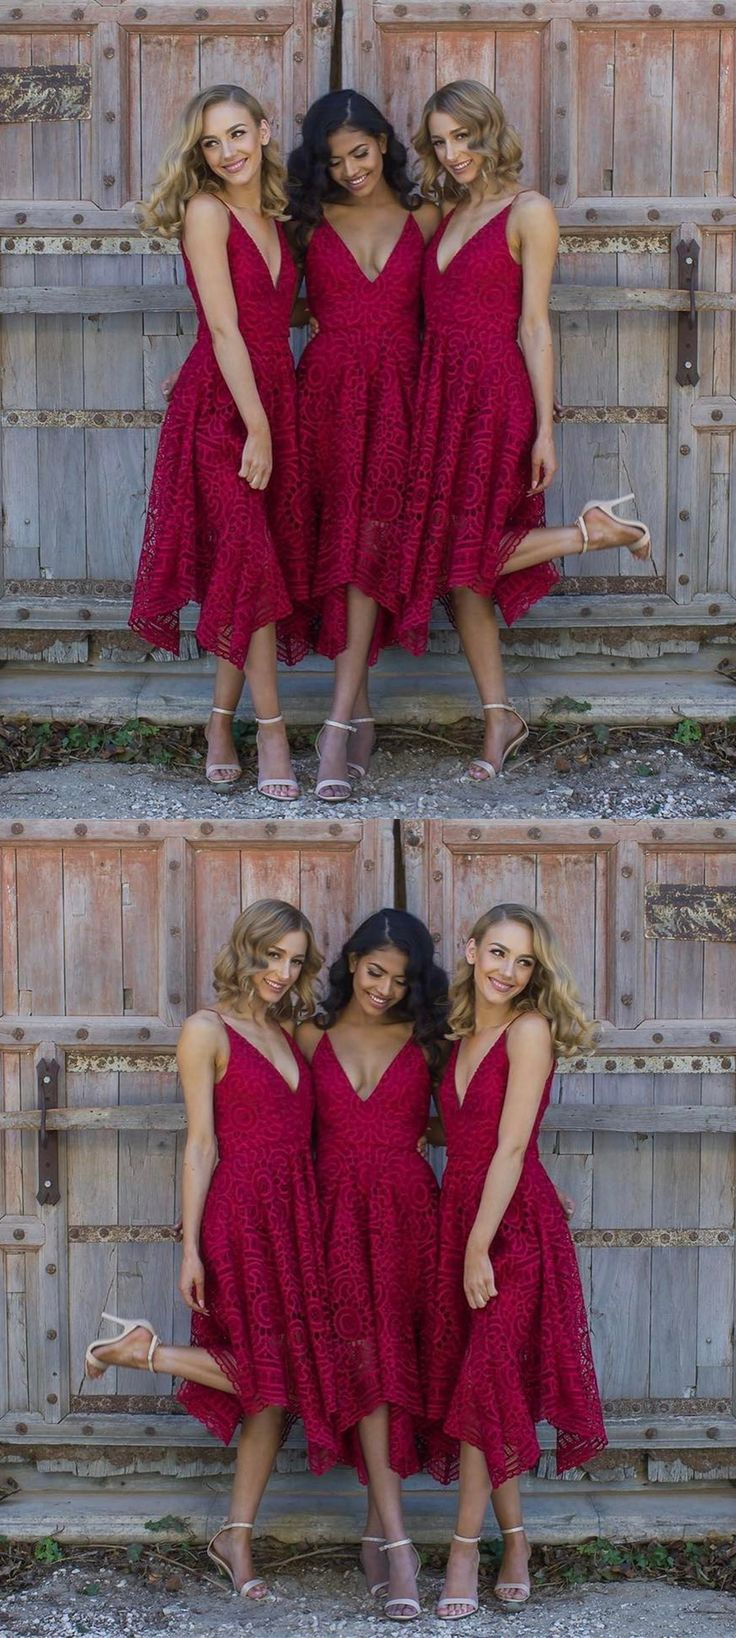 A-Line Spaghetti Straps Asymmetrical Red Lace Bridesmaid Dress, modest red lace boho bridesmaid dresses, unique spaghetti straps asymmetrical wedding party dresses #bohodress #lacedress